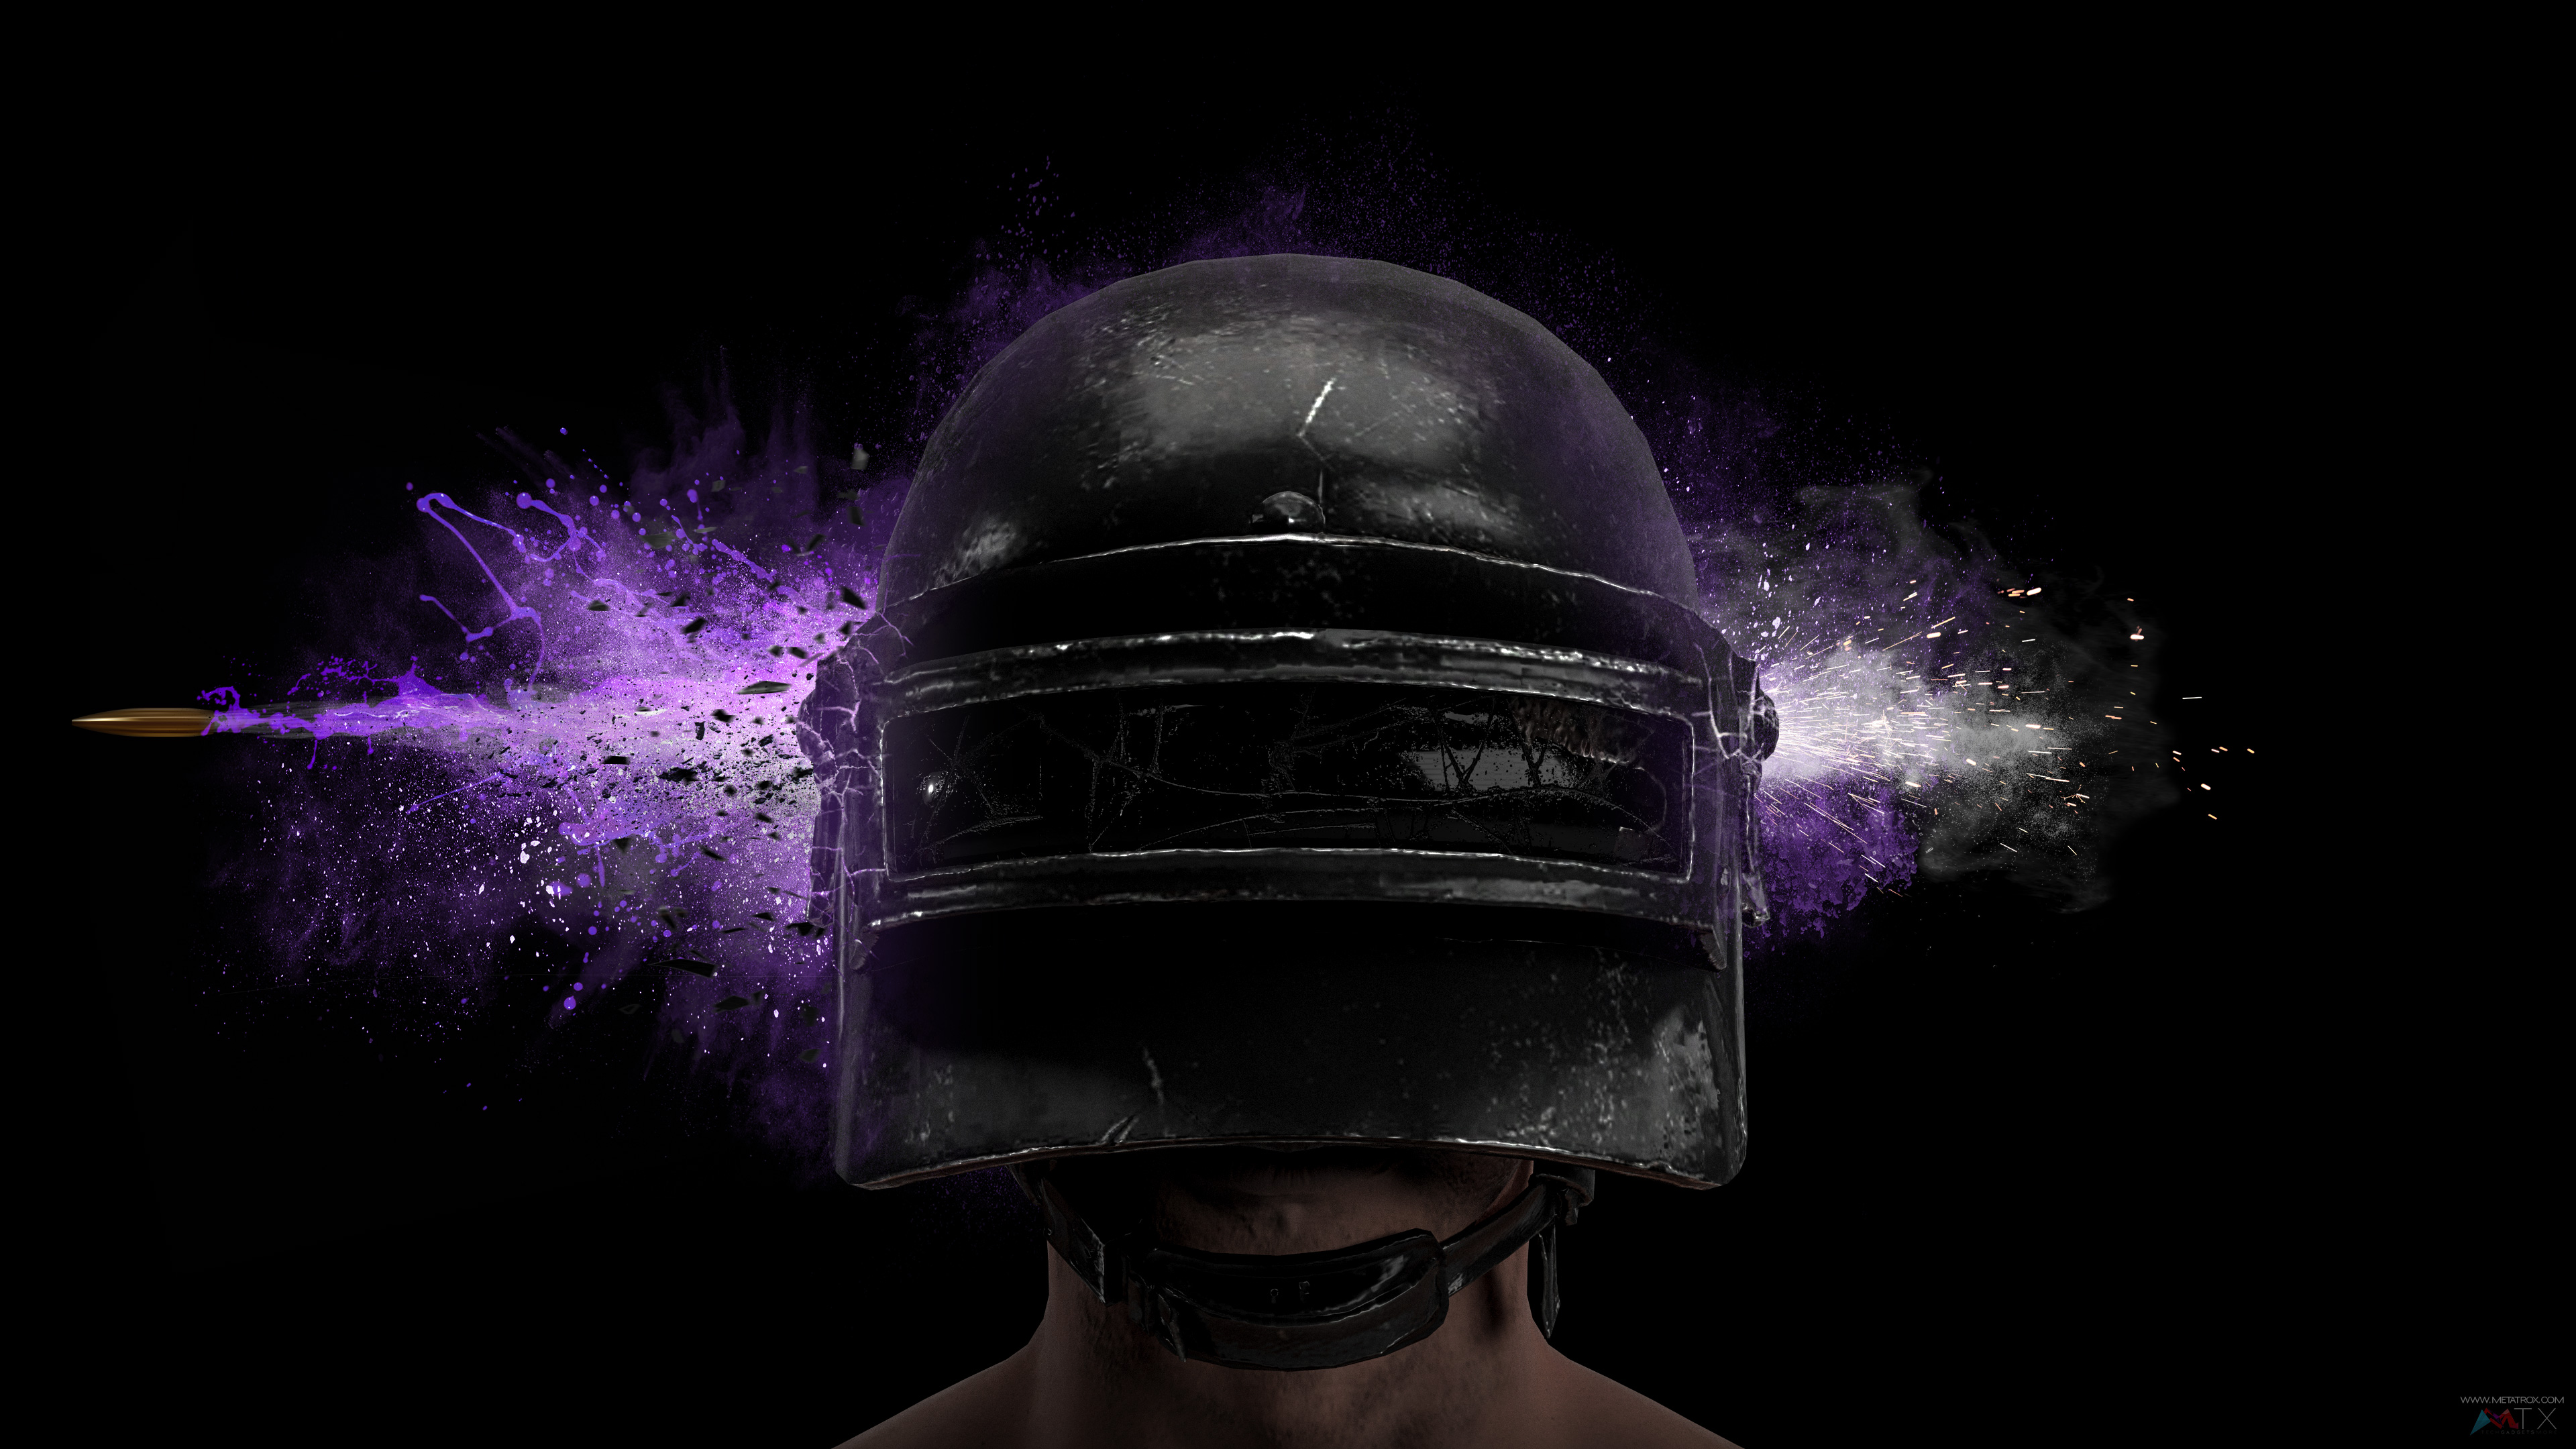 3840x2160 PUBG Game Helmet Guy 4k 4k HD 4k Wallpapers